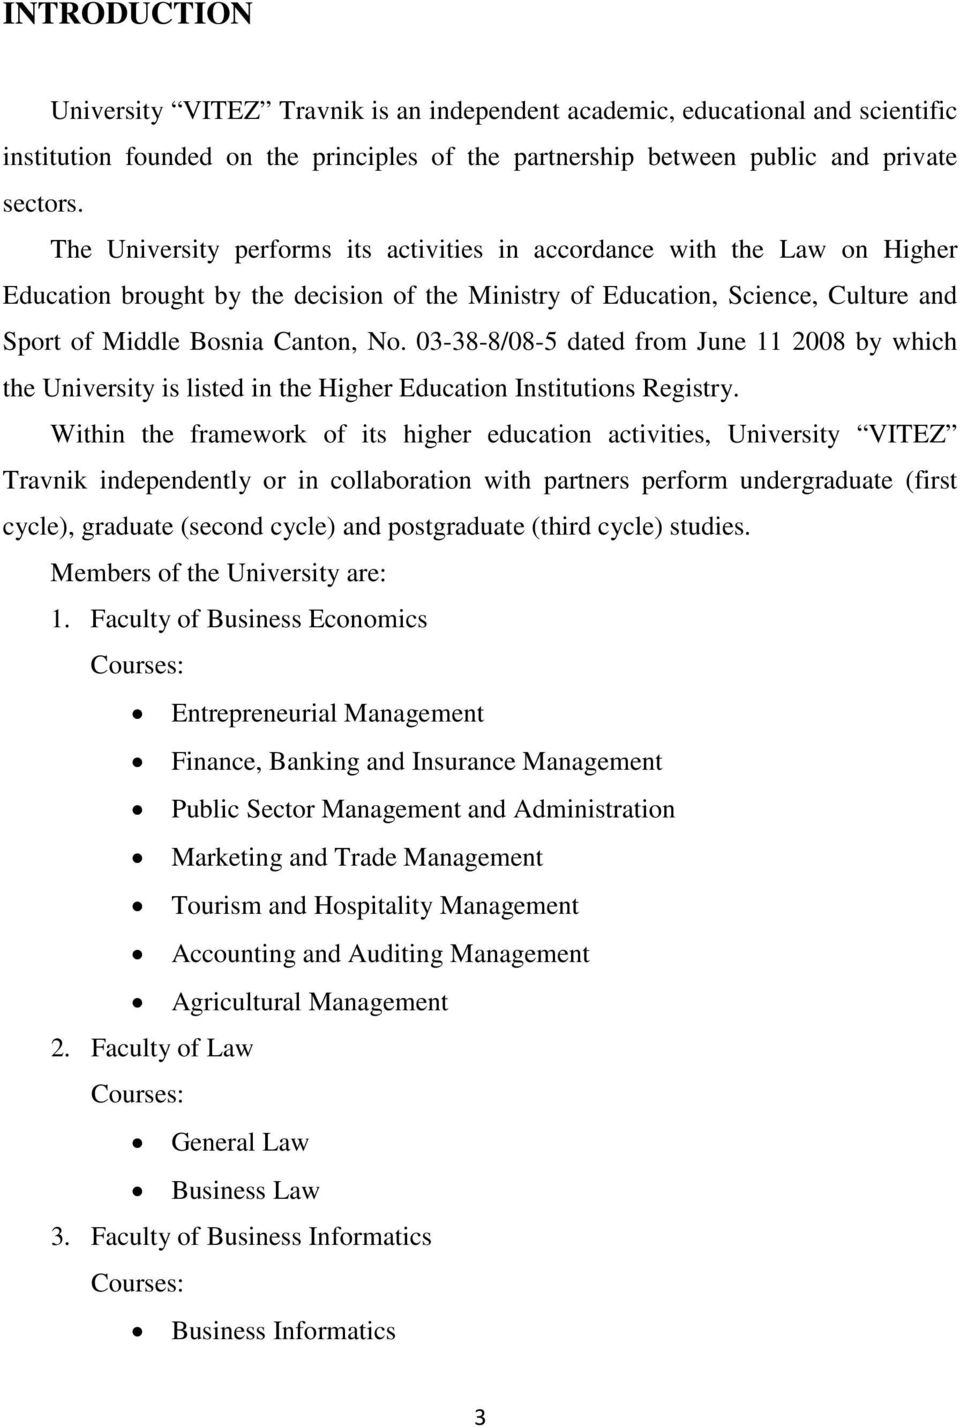 03-38-8/08-5 dated from June 11 2008 by which the University is listed in the Higher Education Institutions Registry.